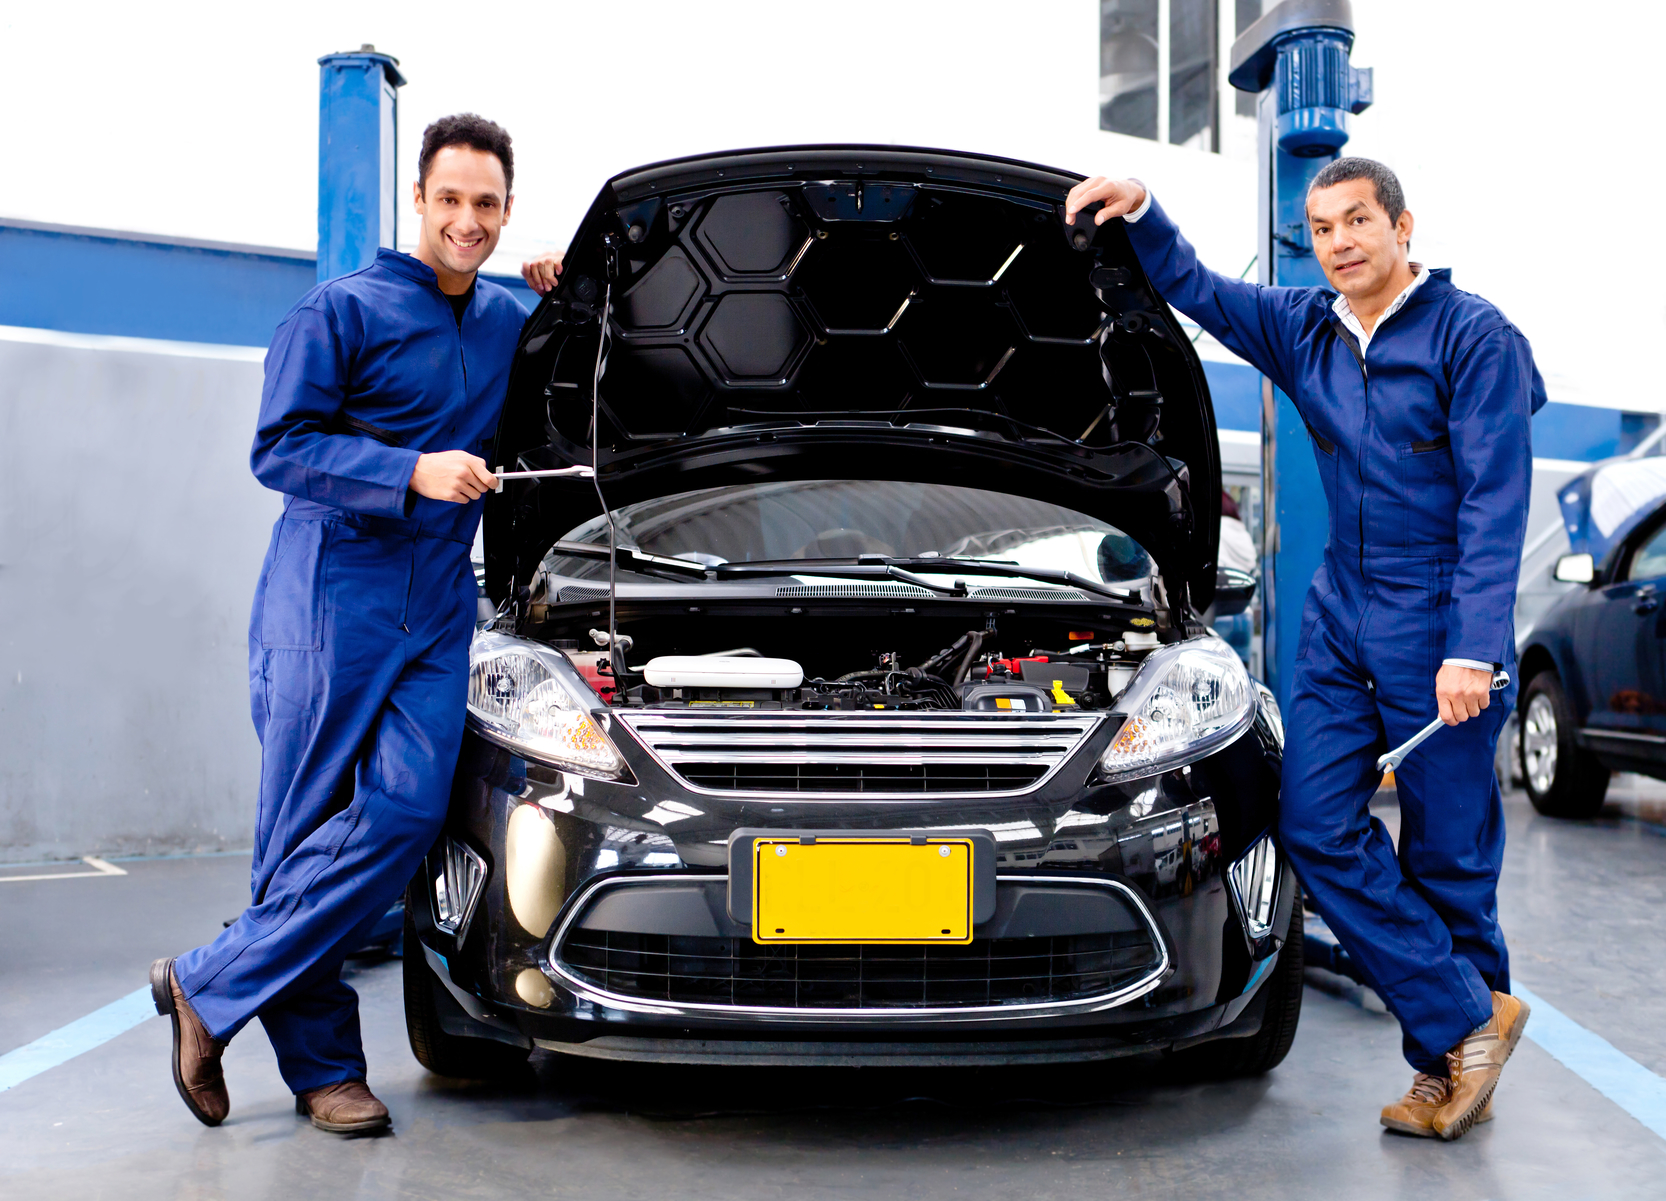 Mechanic Car Inspection Cost